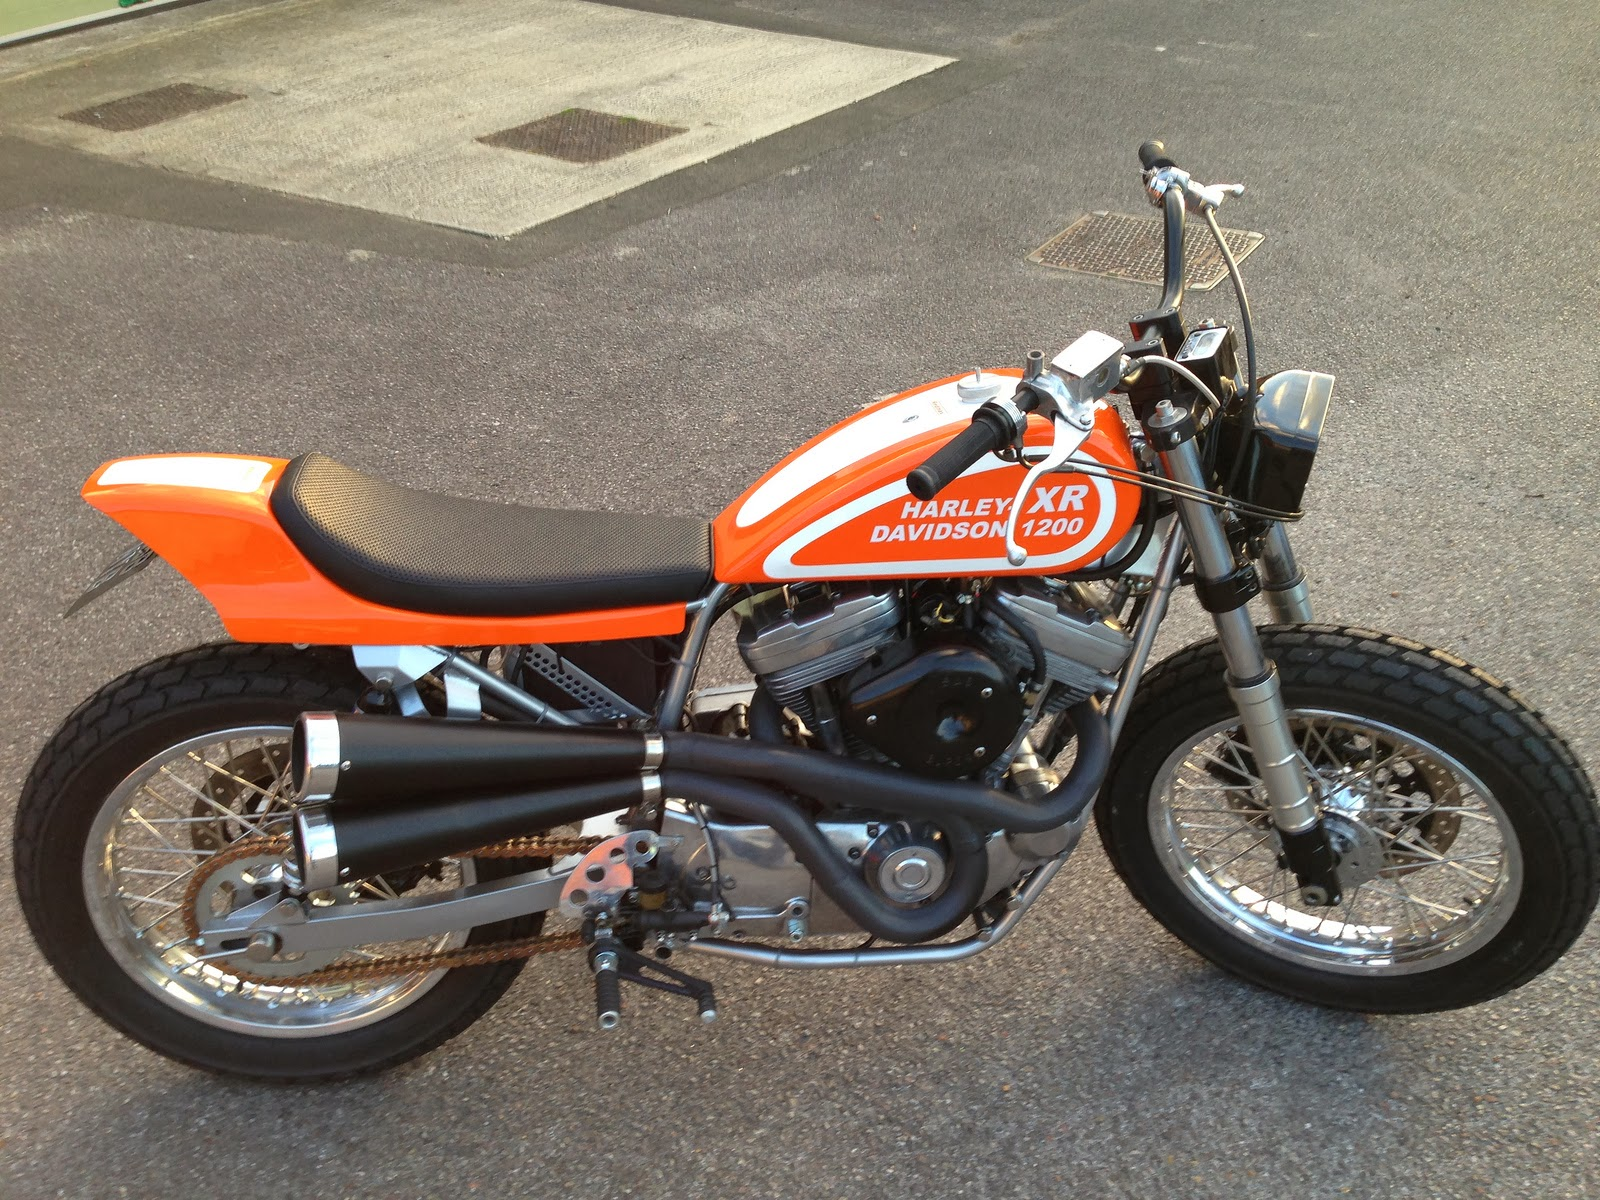 racing caf harley xr 1200 tracker by red max speed shop. Black Bedroom Furniture Sets. Home Design Ideas